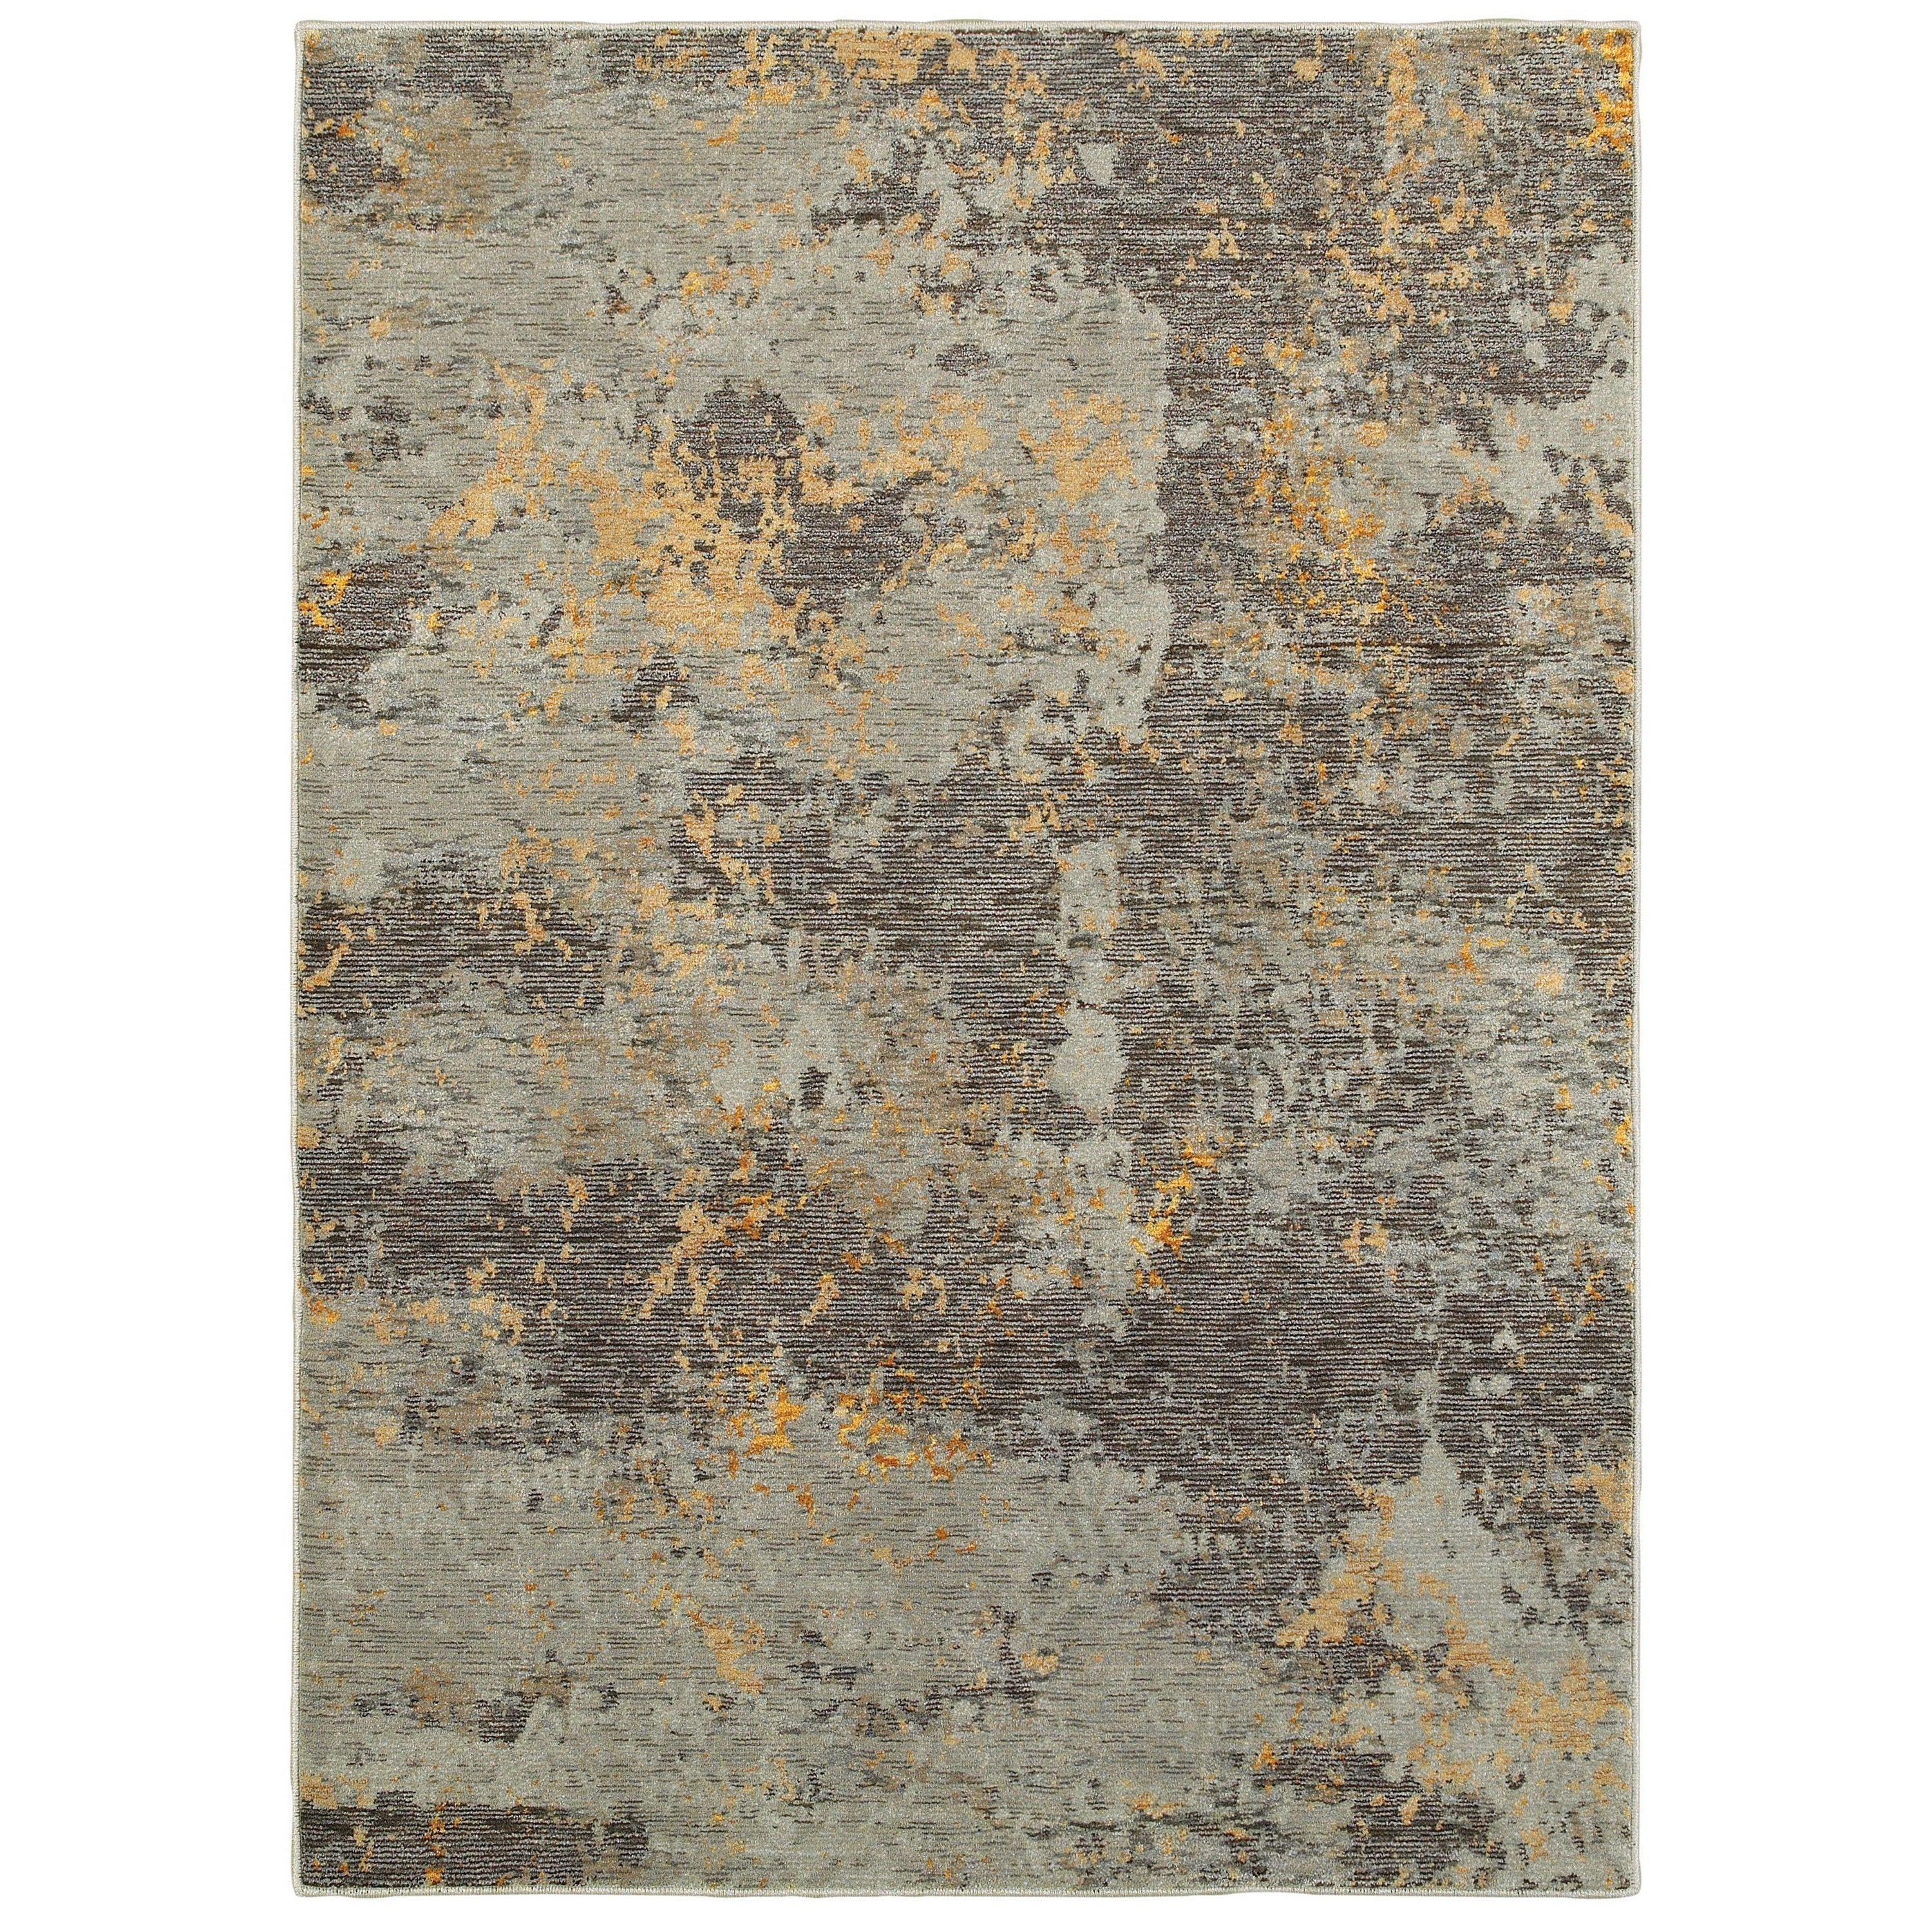 Style Haven Marbled Stone Grey/Gold Area Rug (86 x 117) - 86 x 117 (86 x 117 - Grey/Gold)